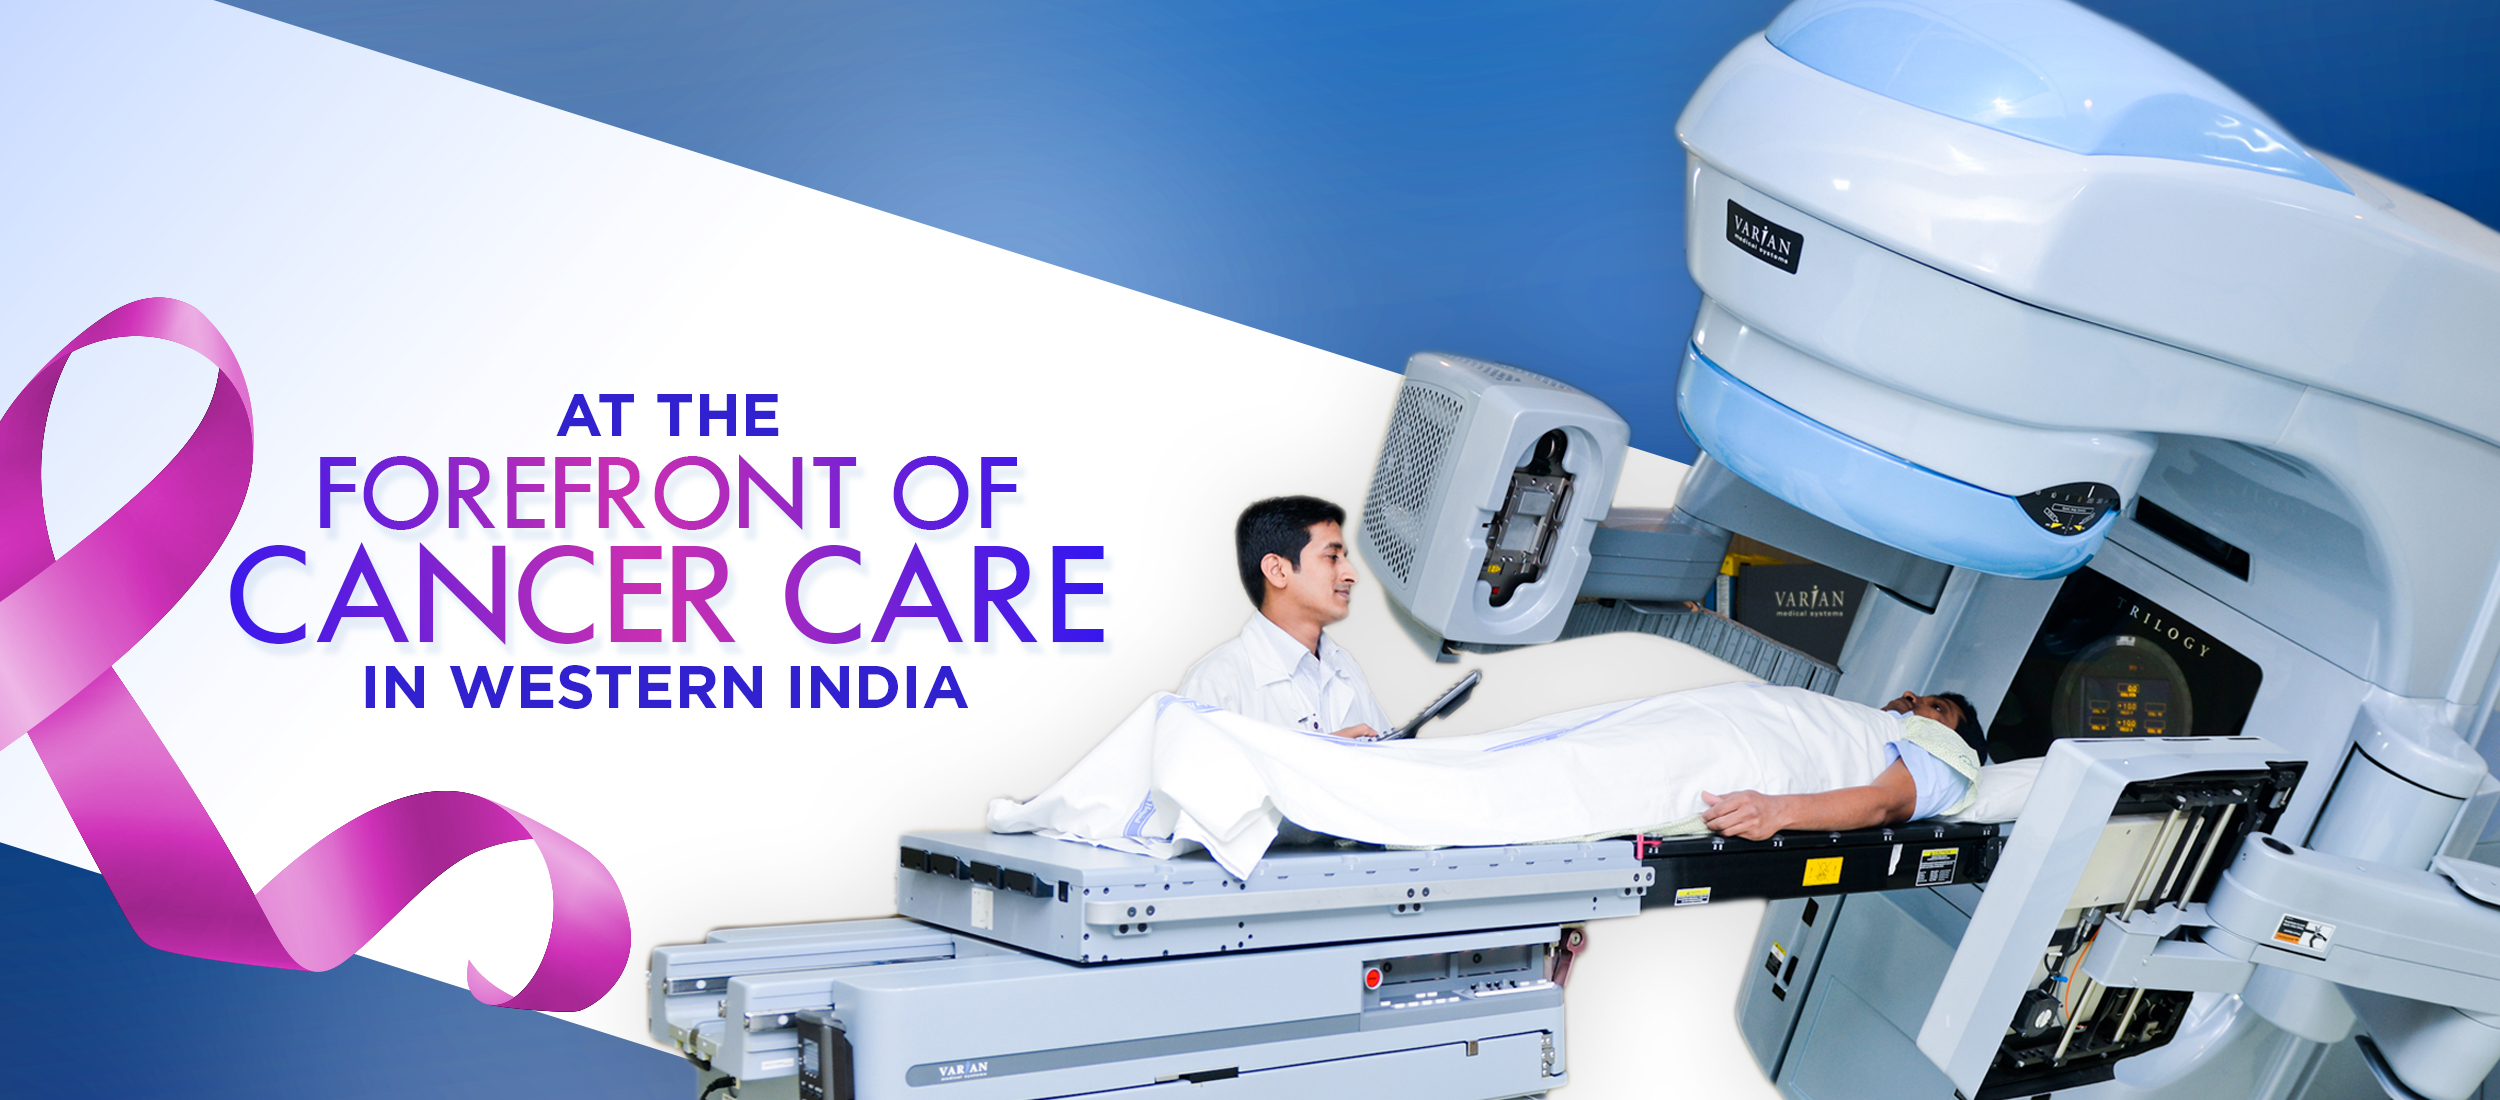 Kokilaben Dhirubhai Ambani Hospital - At The Forefront Of Cancer Care In Western India